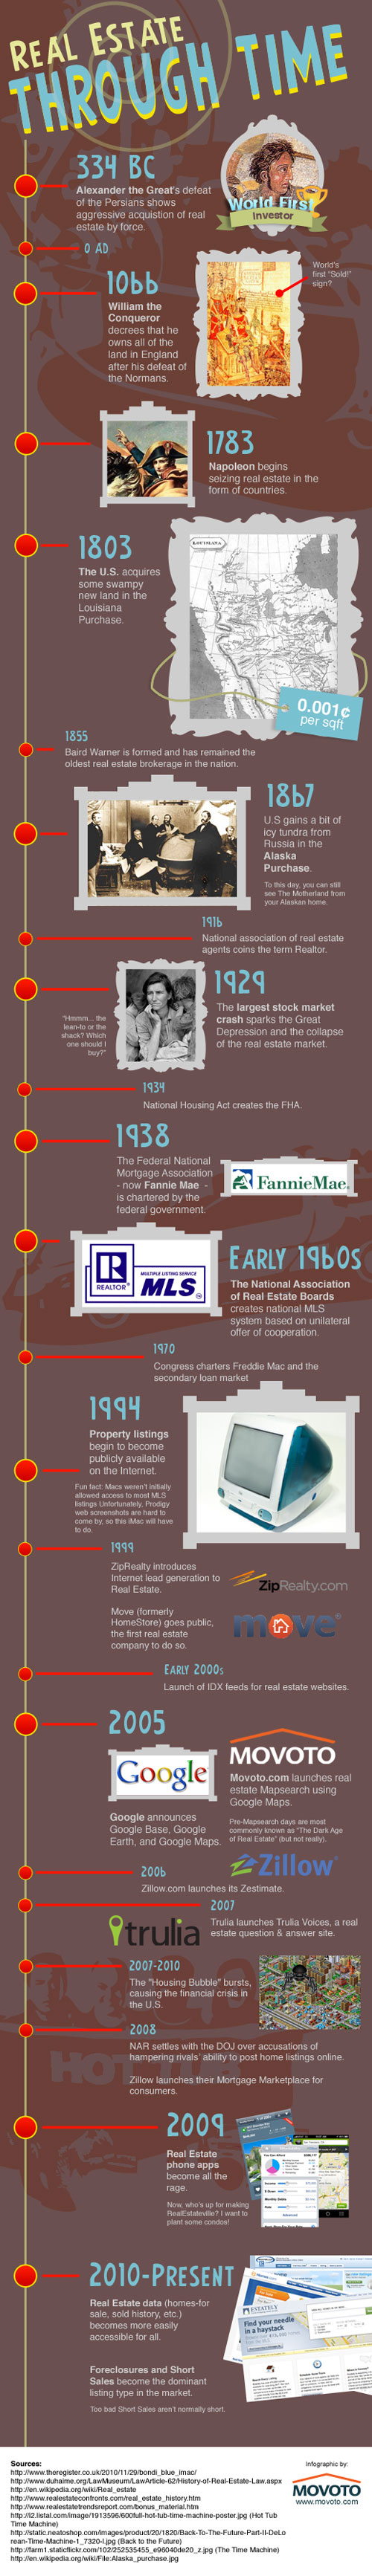 Real Estate Infographic Timeline